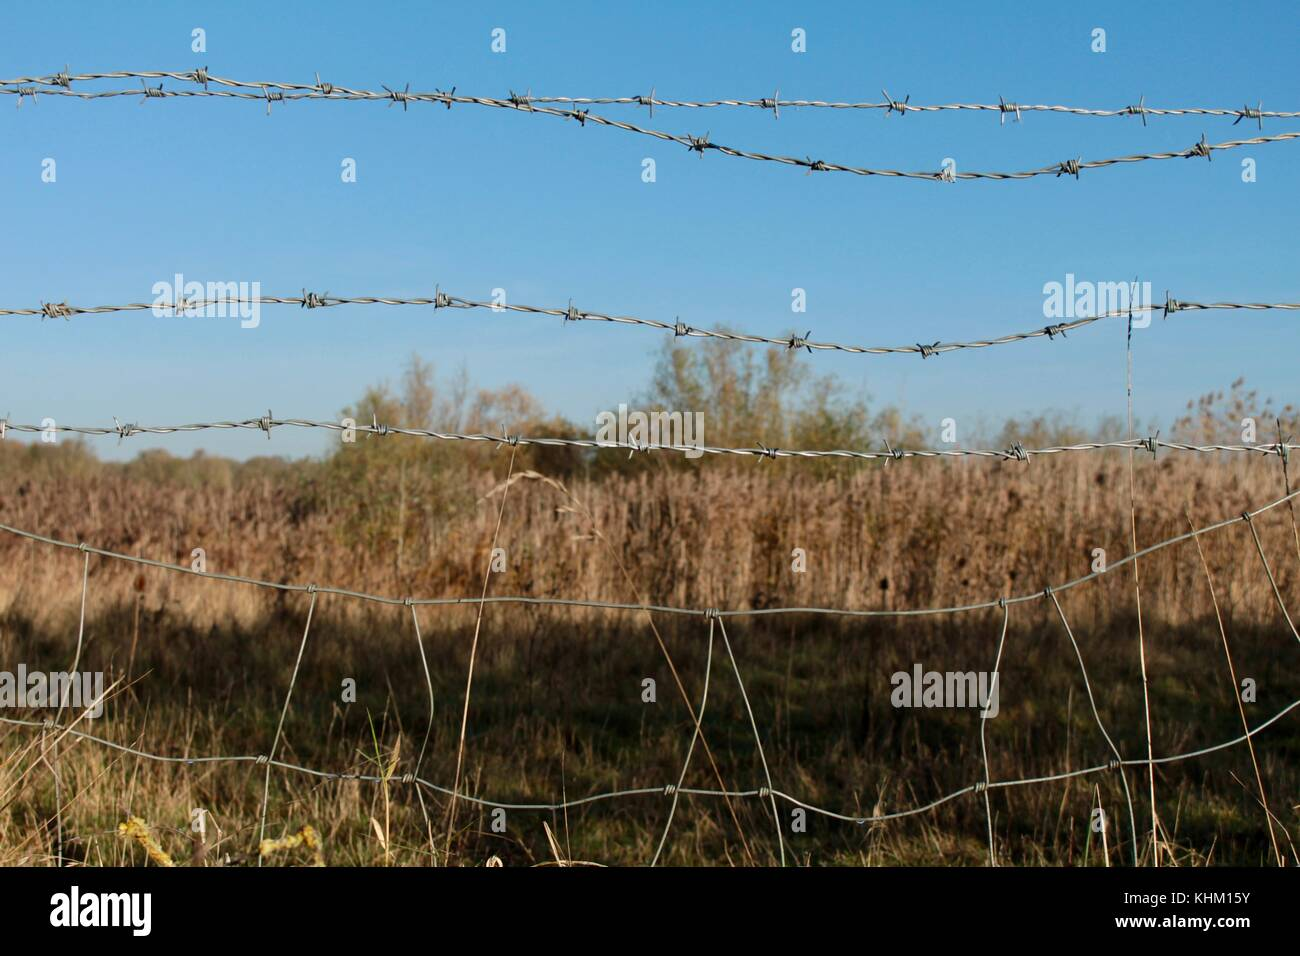 Cattle Behind Barbed Wire Stock Photos & Cattle Behind Barbed Wire ...